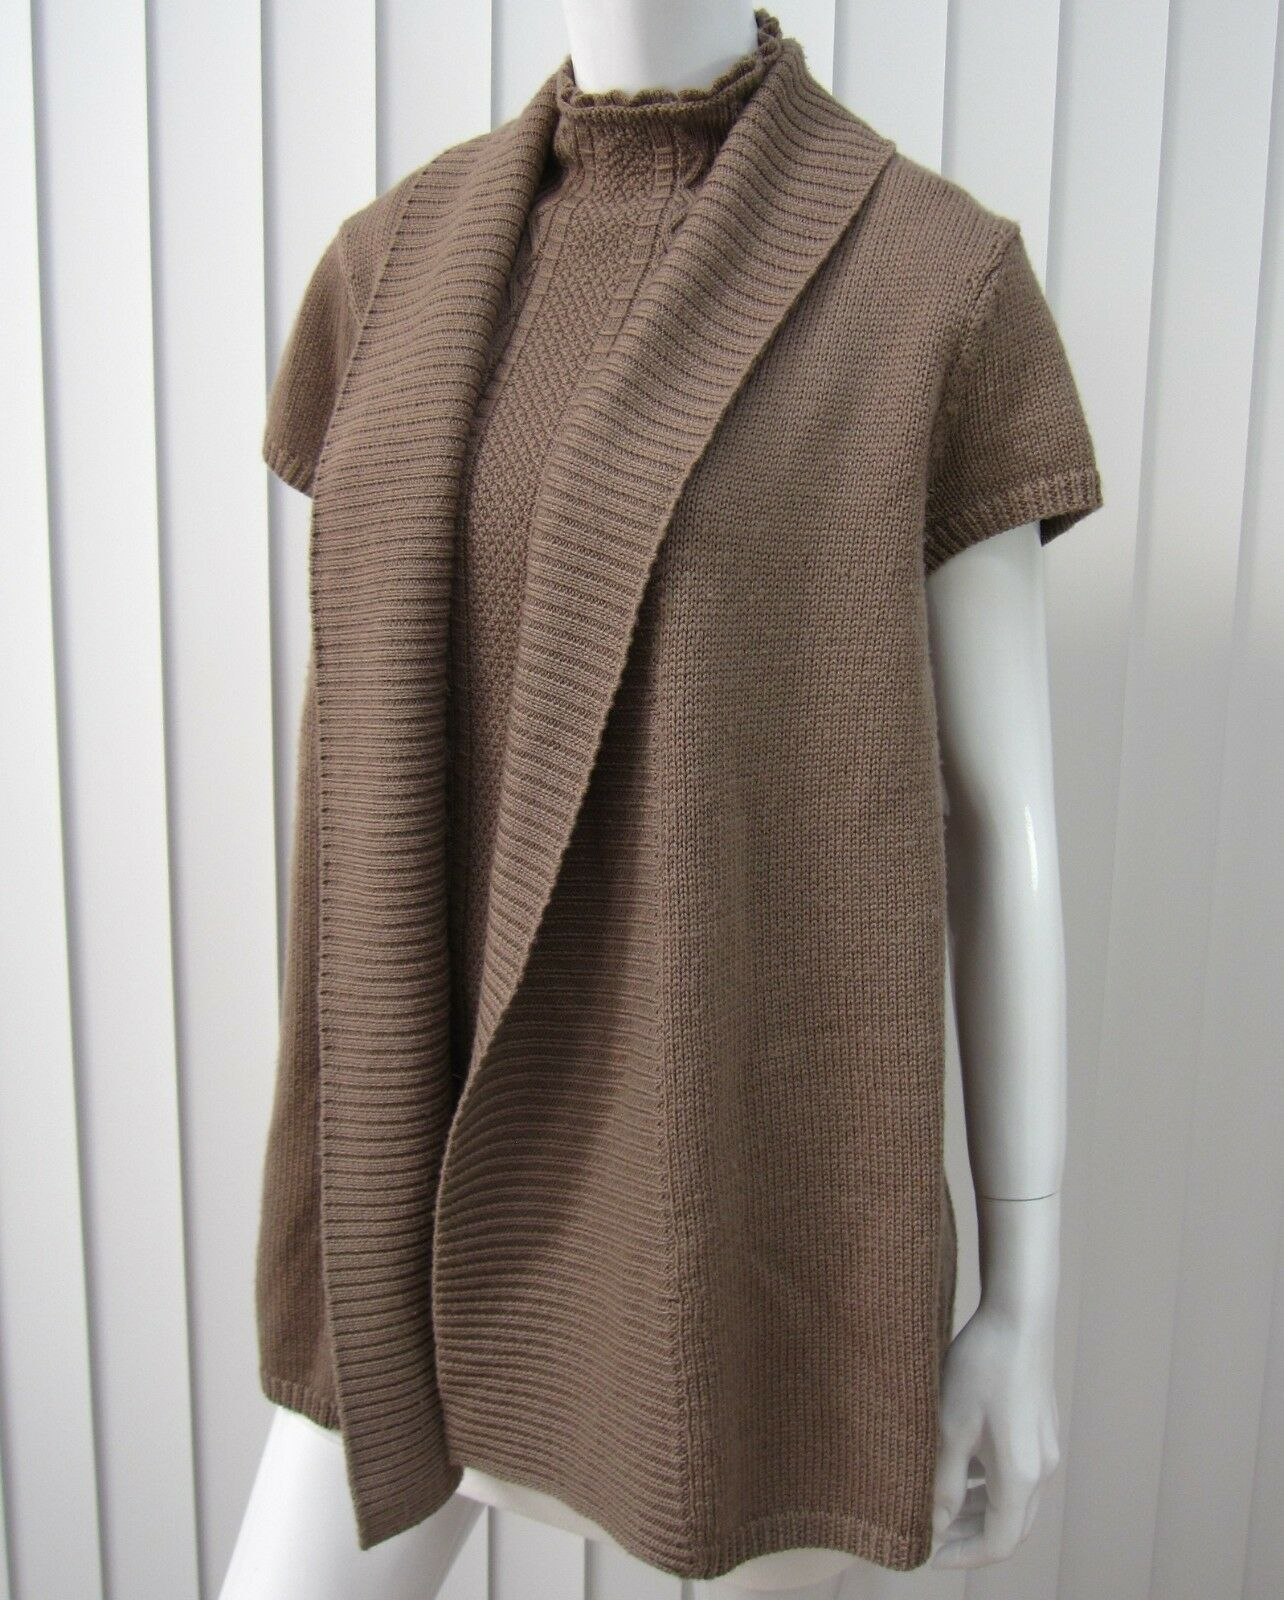 Saks Fifth Avenue Short Sleeve Cardigan Sweater Size L Large Brown